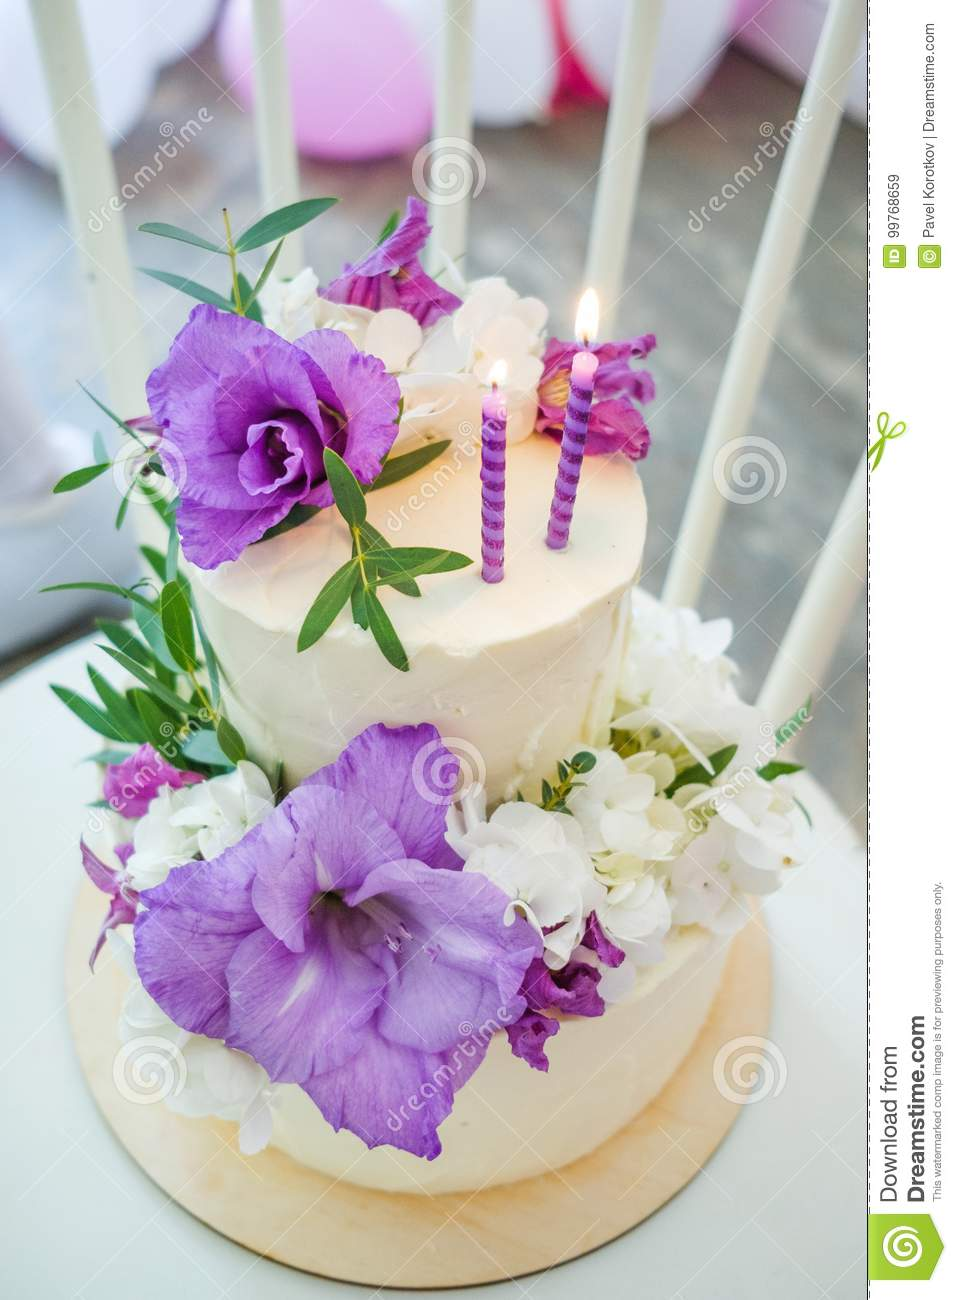 Birthday Cake With Candles Decorated Purple And White Flowers